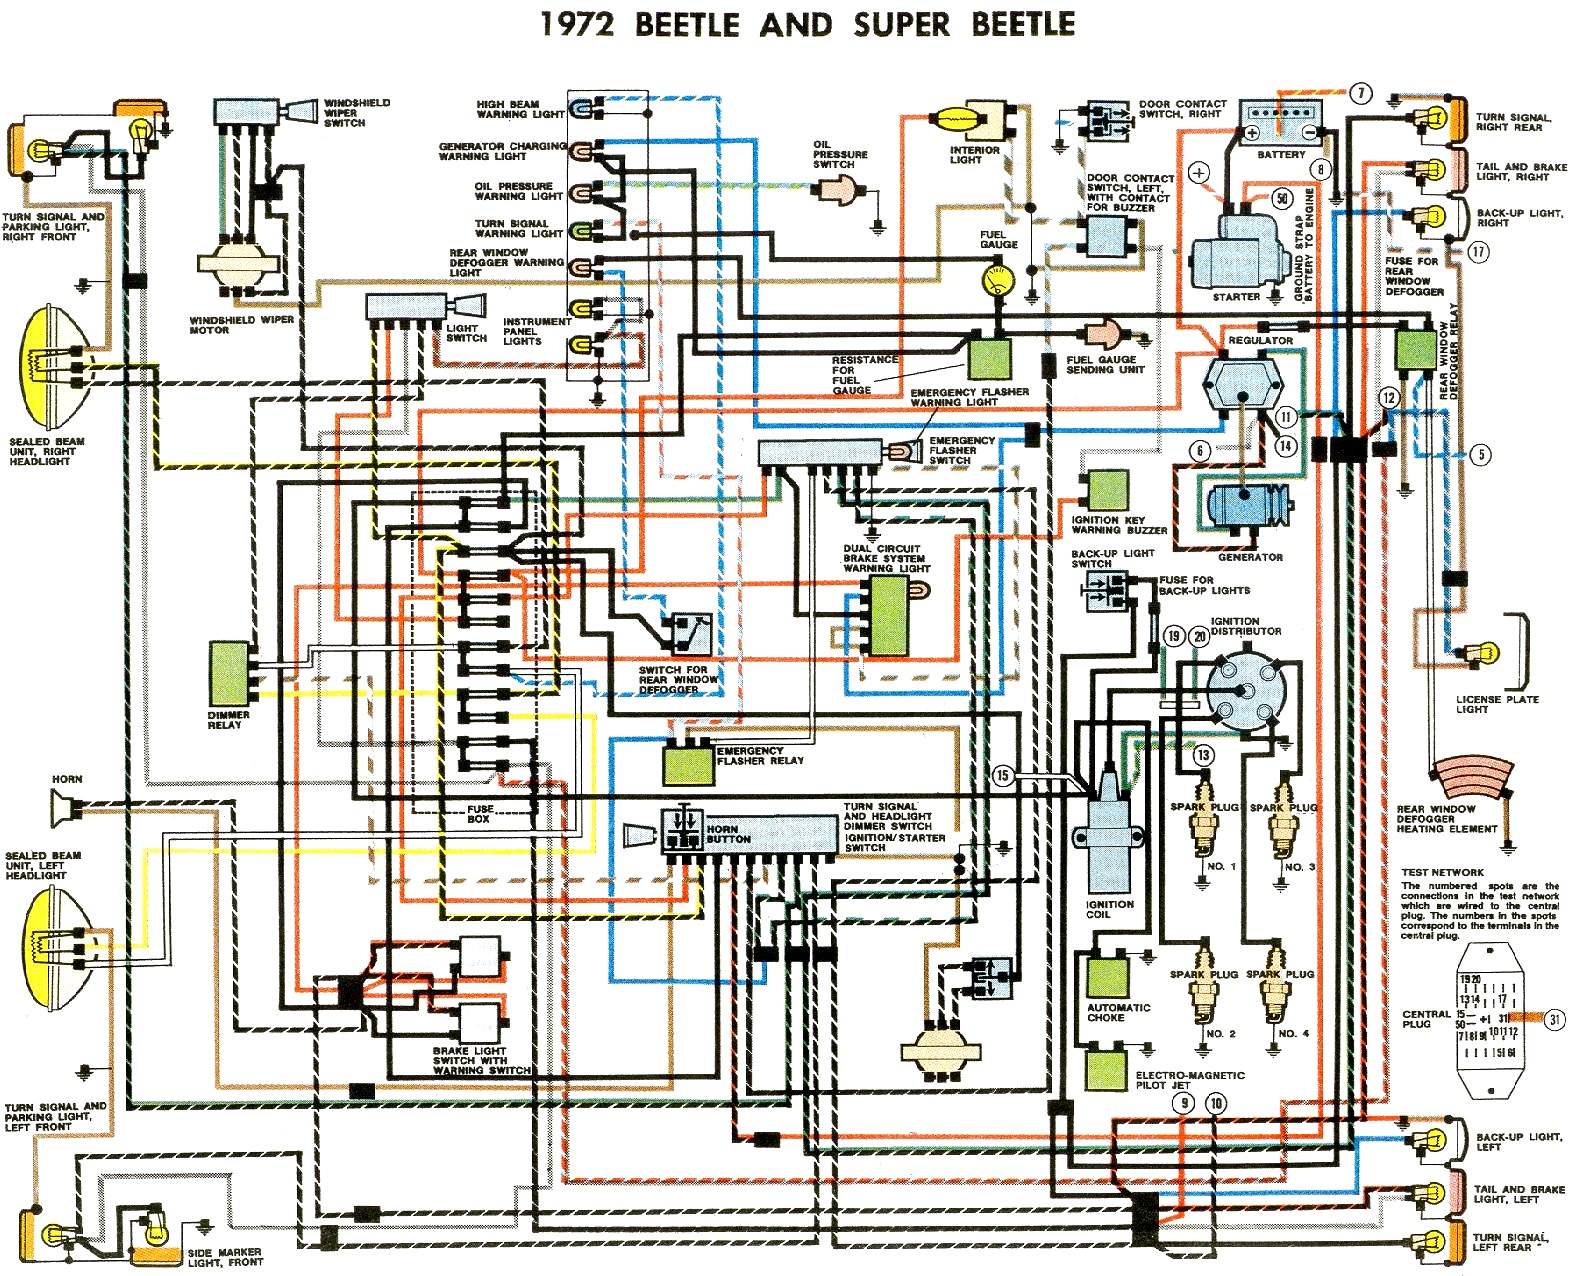 bug_72 1972 beetle wiring diagram thegoldenbug com vw beetle diagrams at virtualis.co